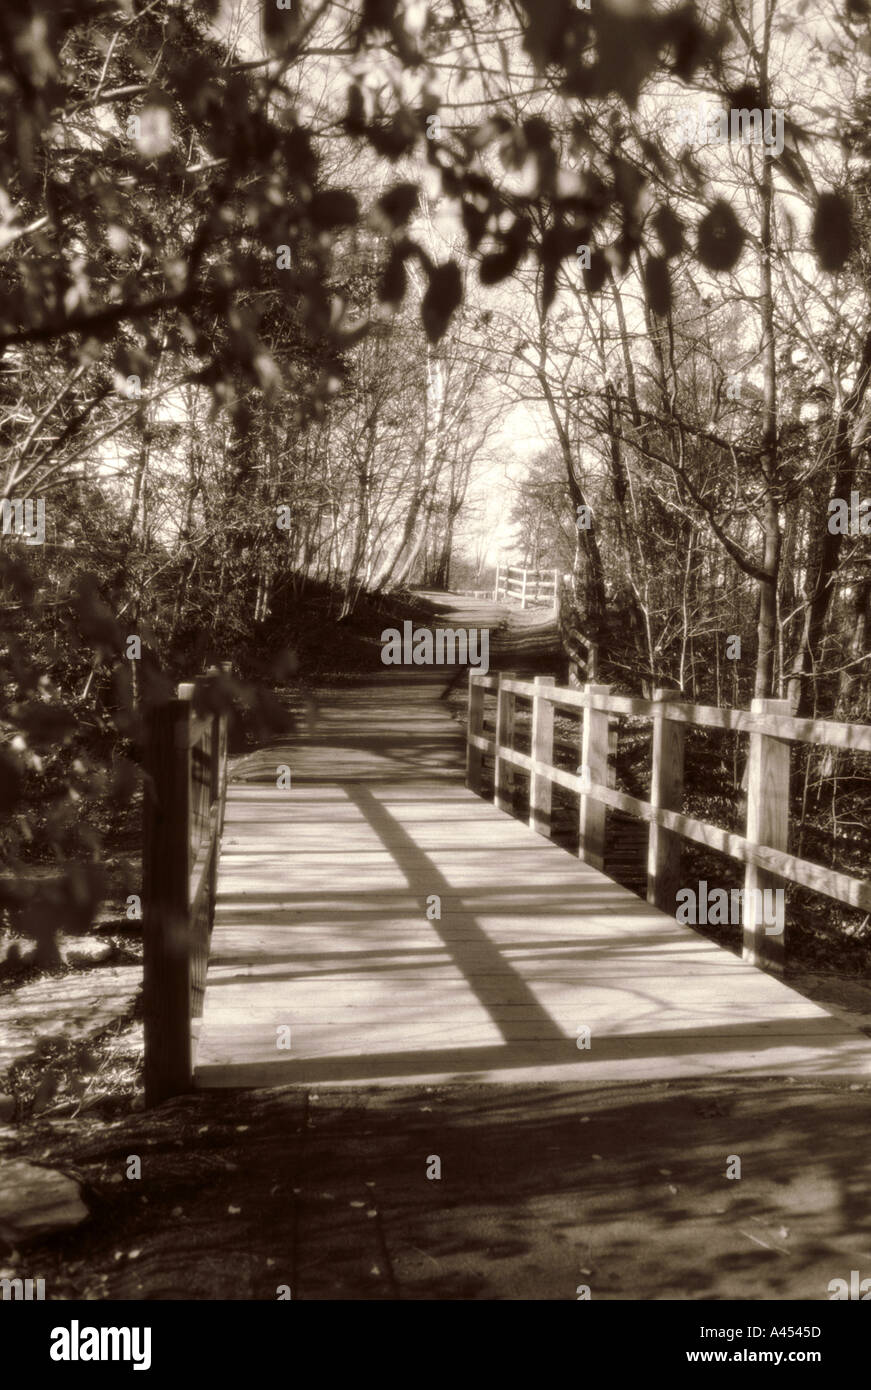 Wooden bridge over stream in woods leads to open space - Stock Image